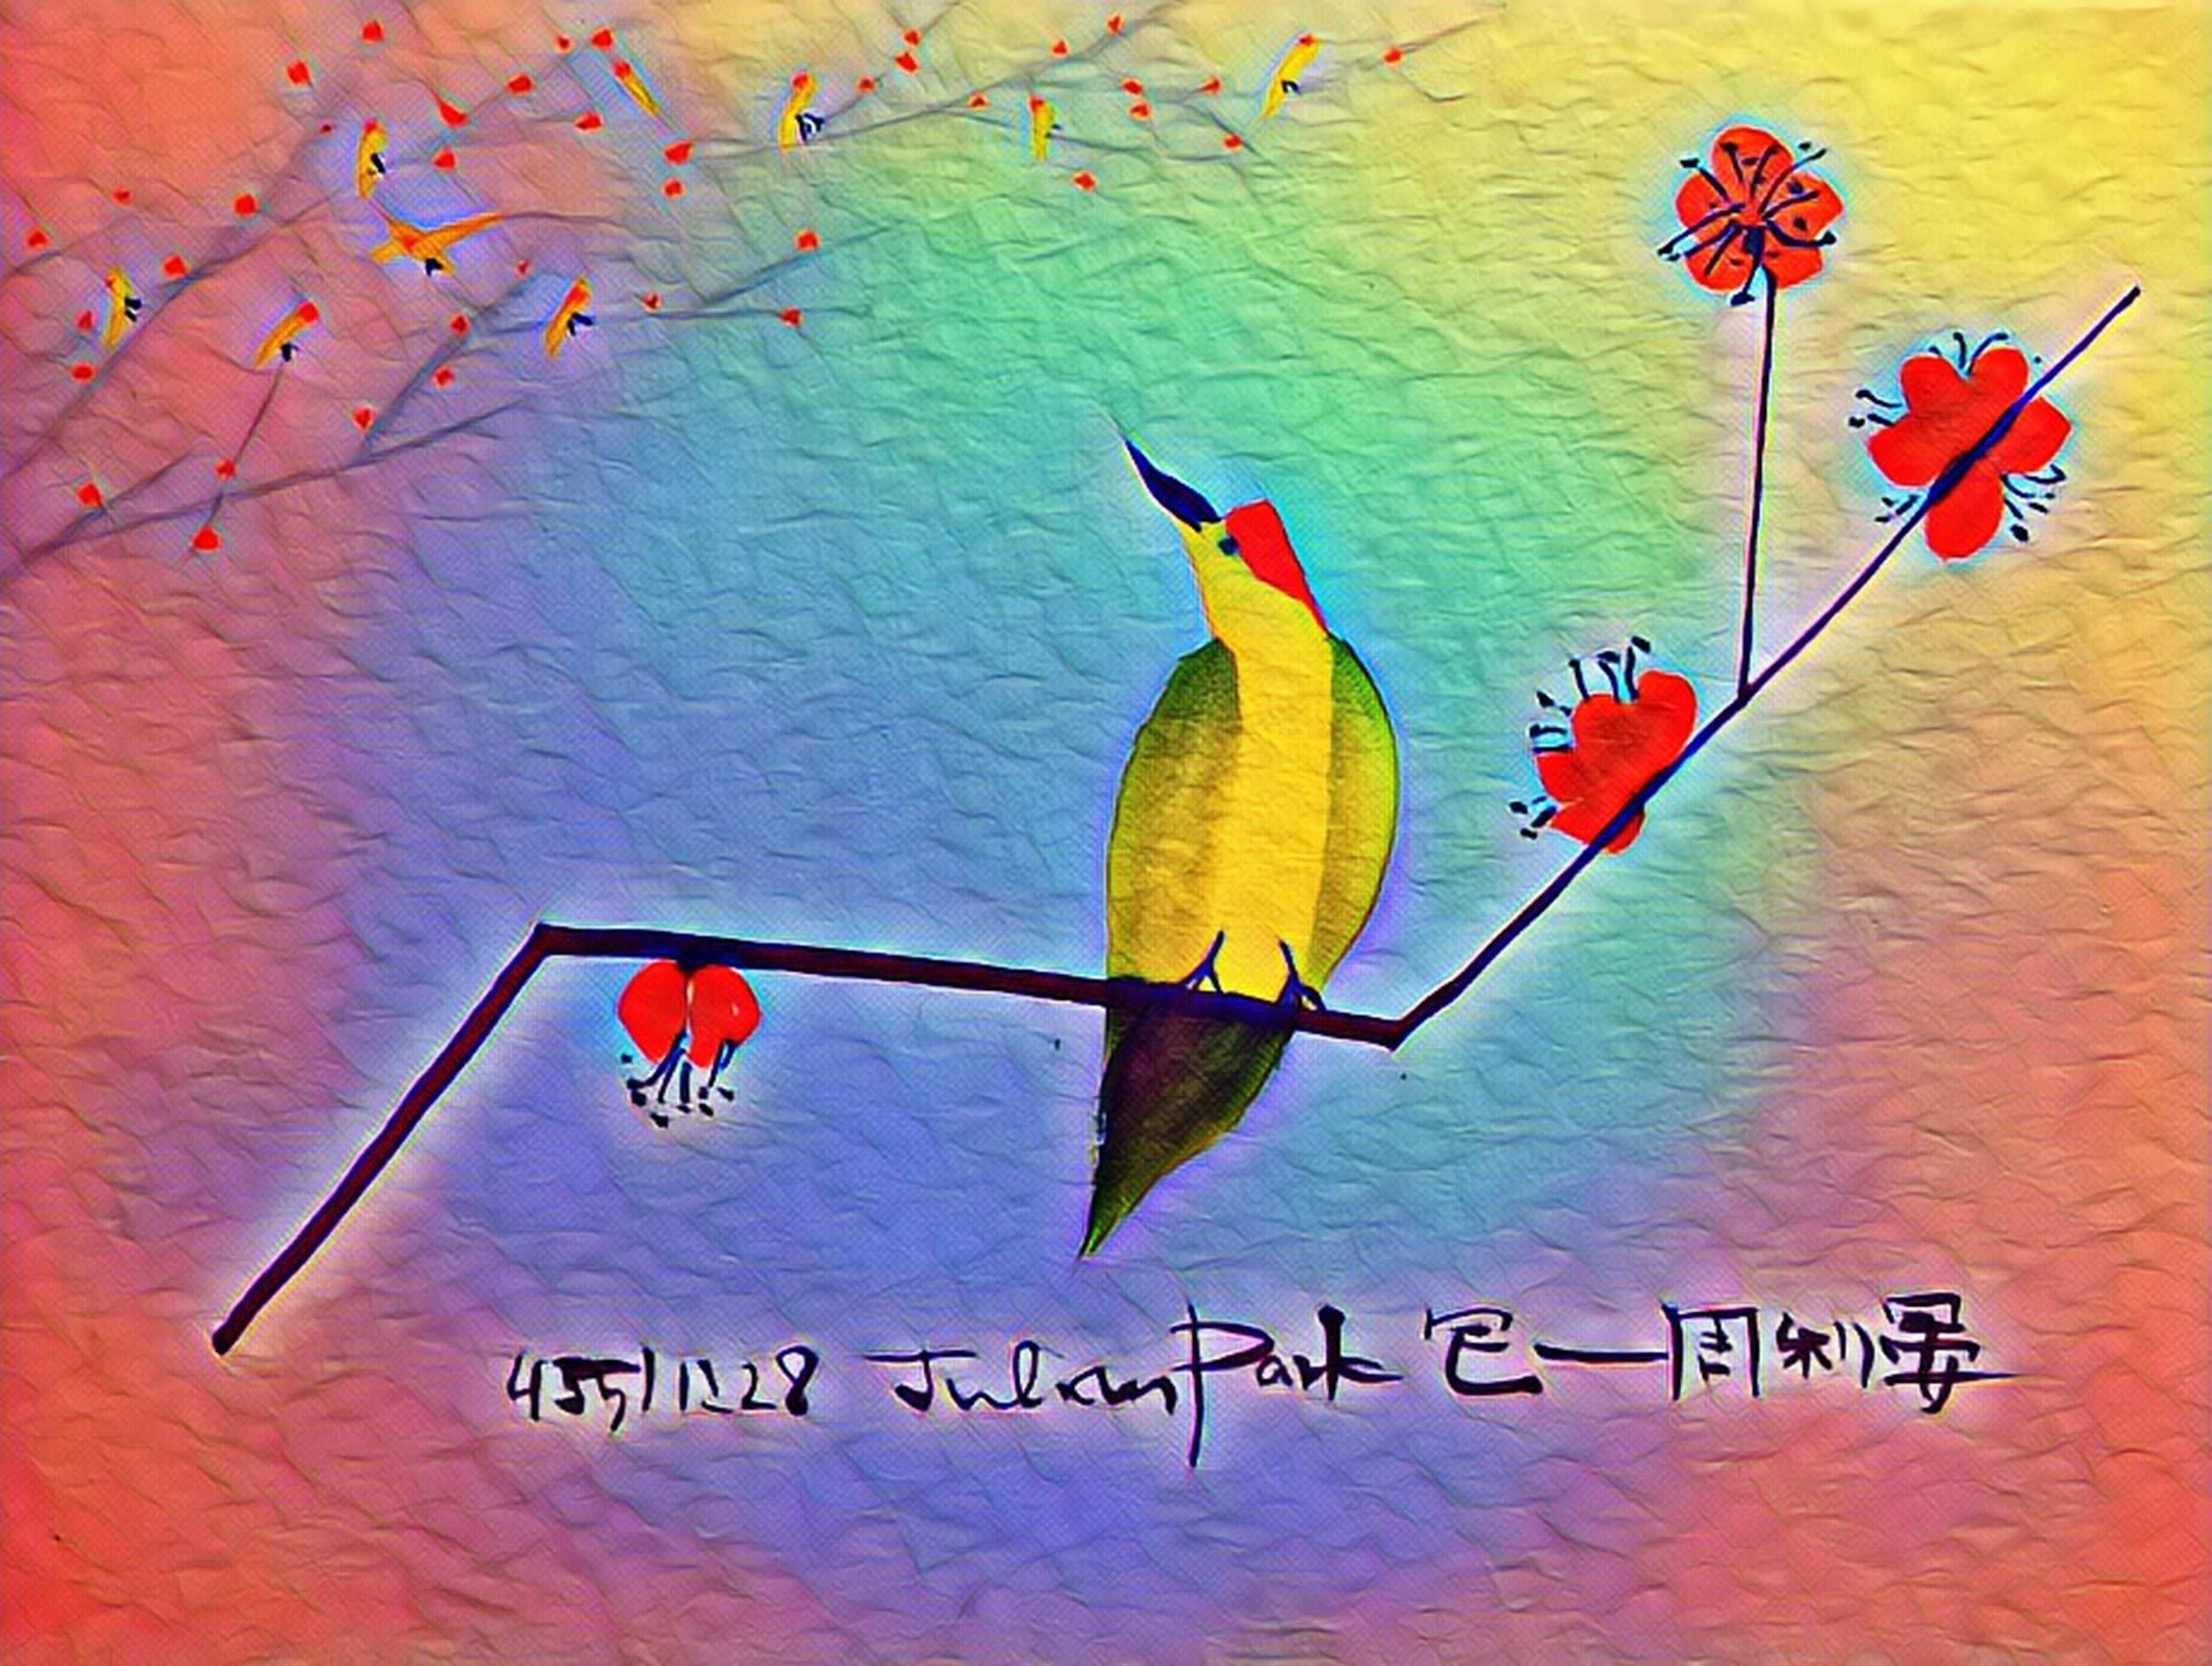 multi colored, art and craft, no people, representation, bird, creativity, paper, vertebrate, text, indoors, western script, parrot, close-up, craft, nature, red, human representation